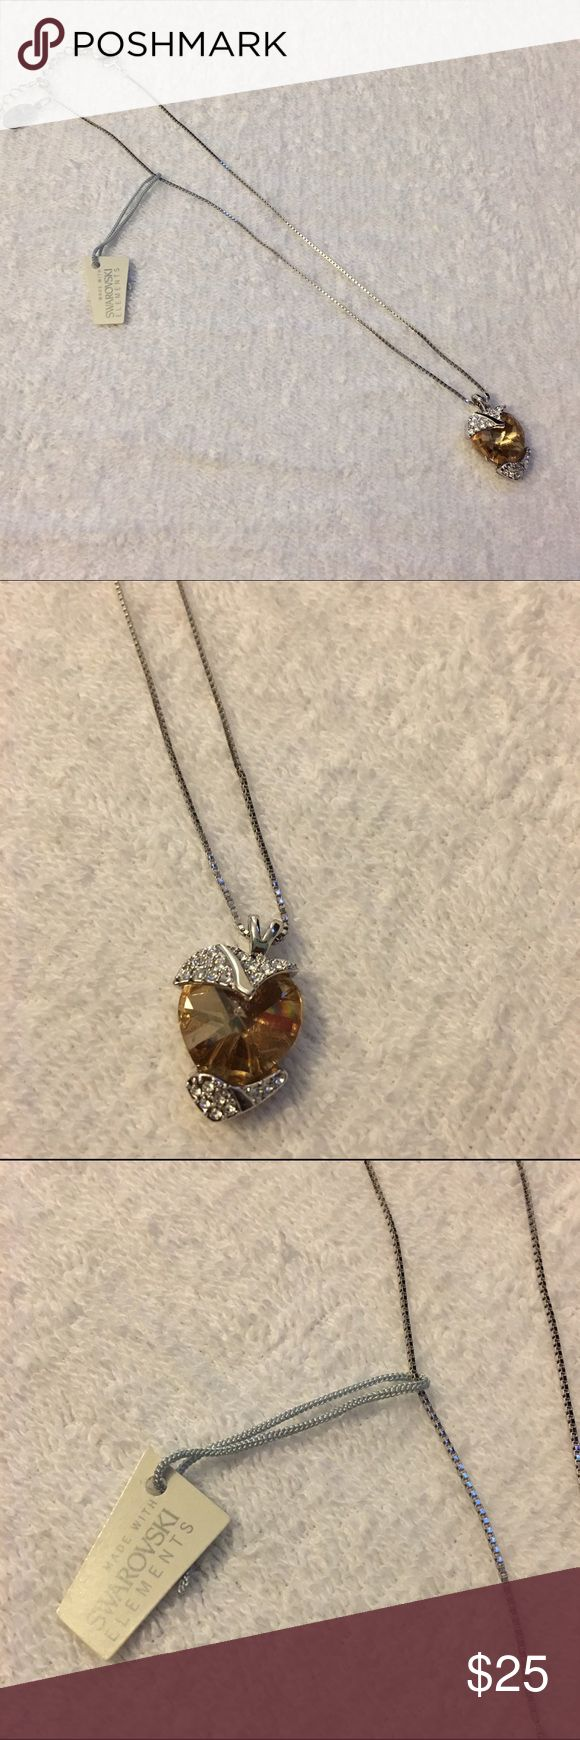 Eric Andrew Collection-Swarovski elements necklace Eric Andrews Collection necklace with adjustable clasp. Heart shaped amber Swarovski center crystal with white Swarovski crystal accents, all on a silver chain. Eric Andrews Collection Jewelry Necklaces